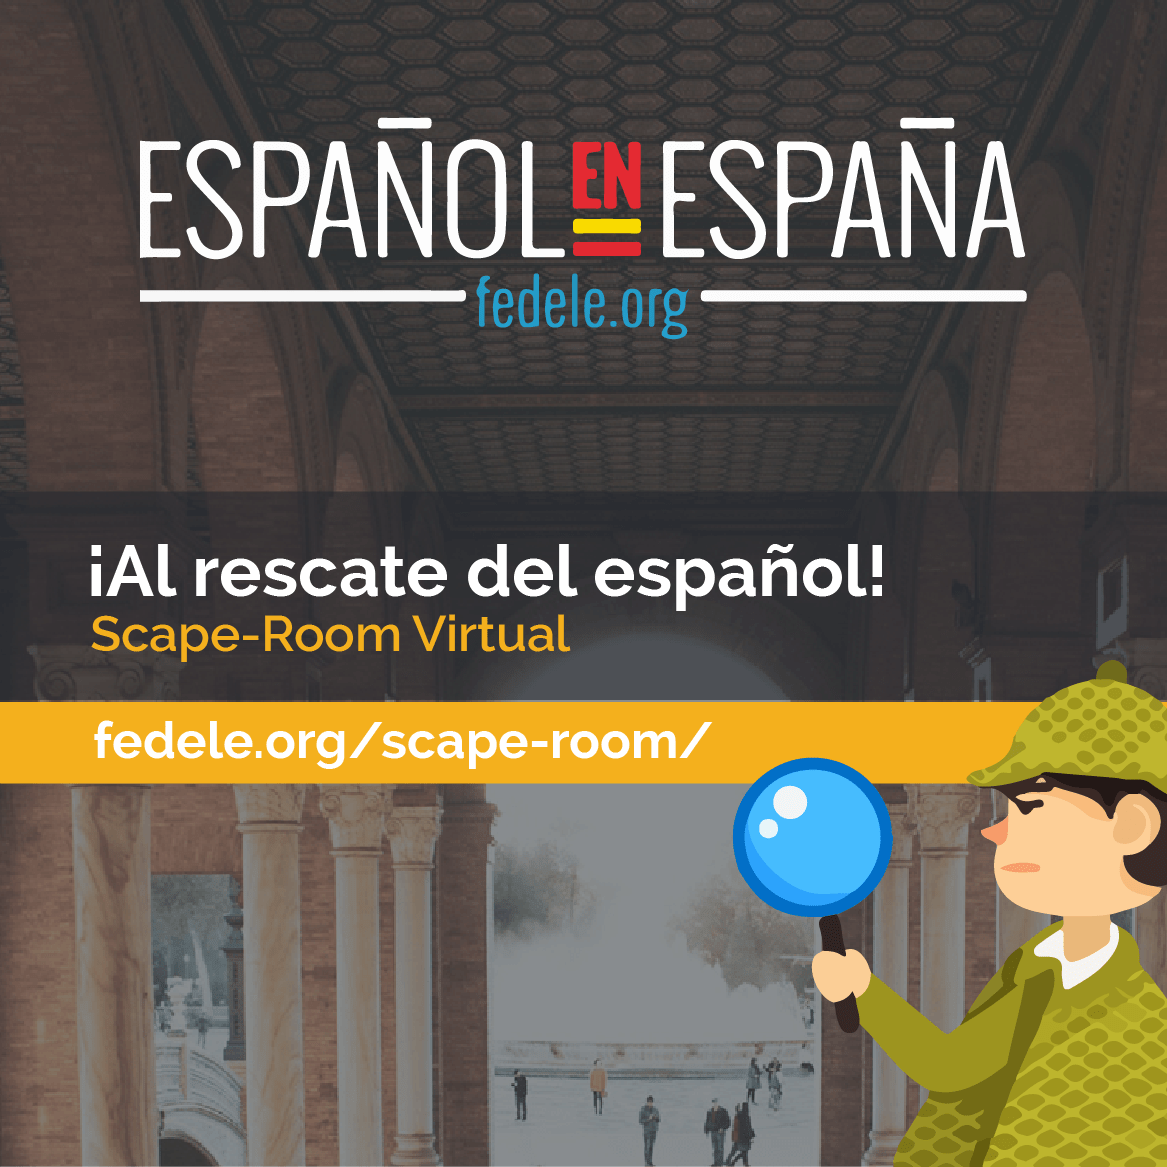 Scape-room: To the rescue of Spanish!